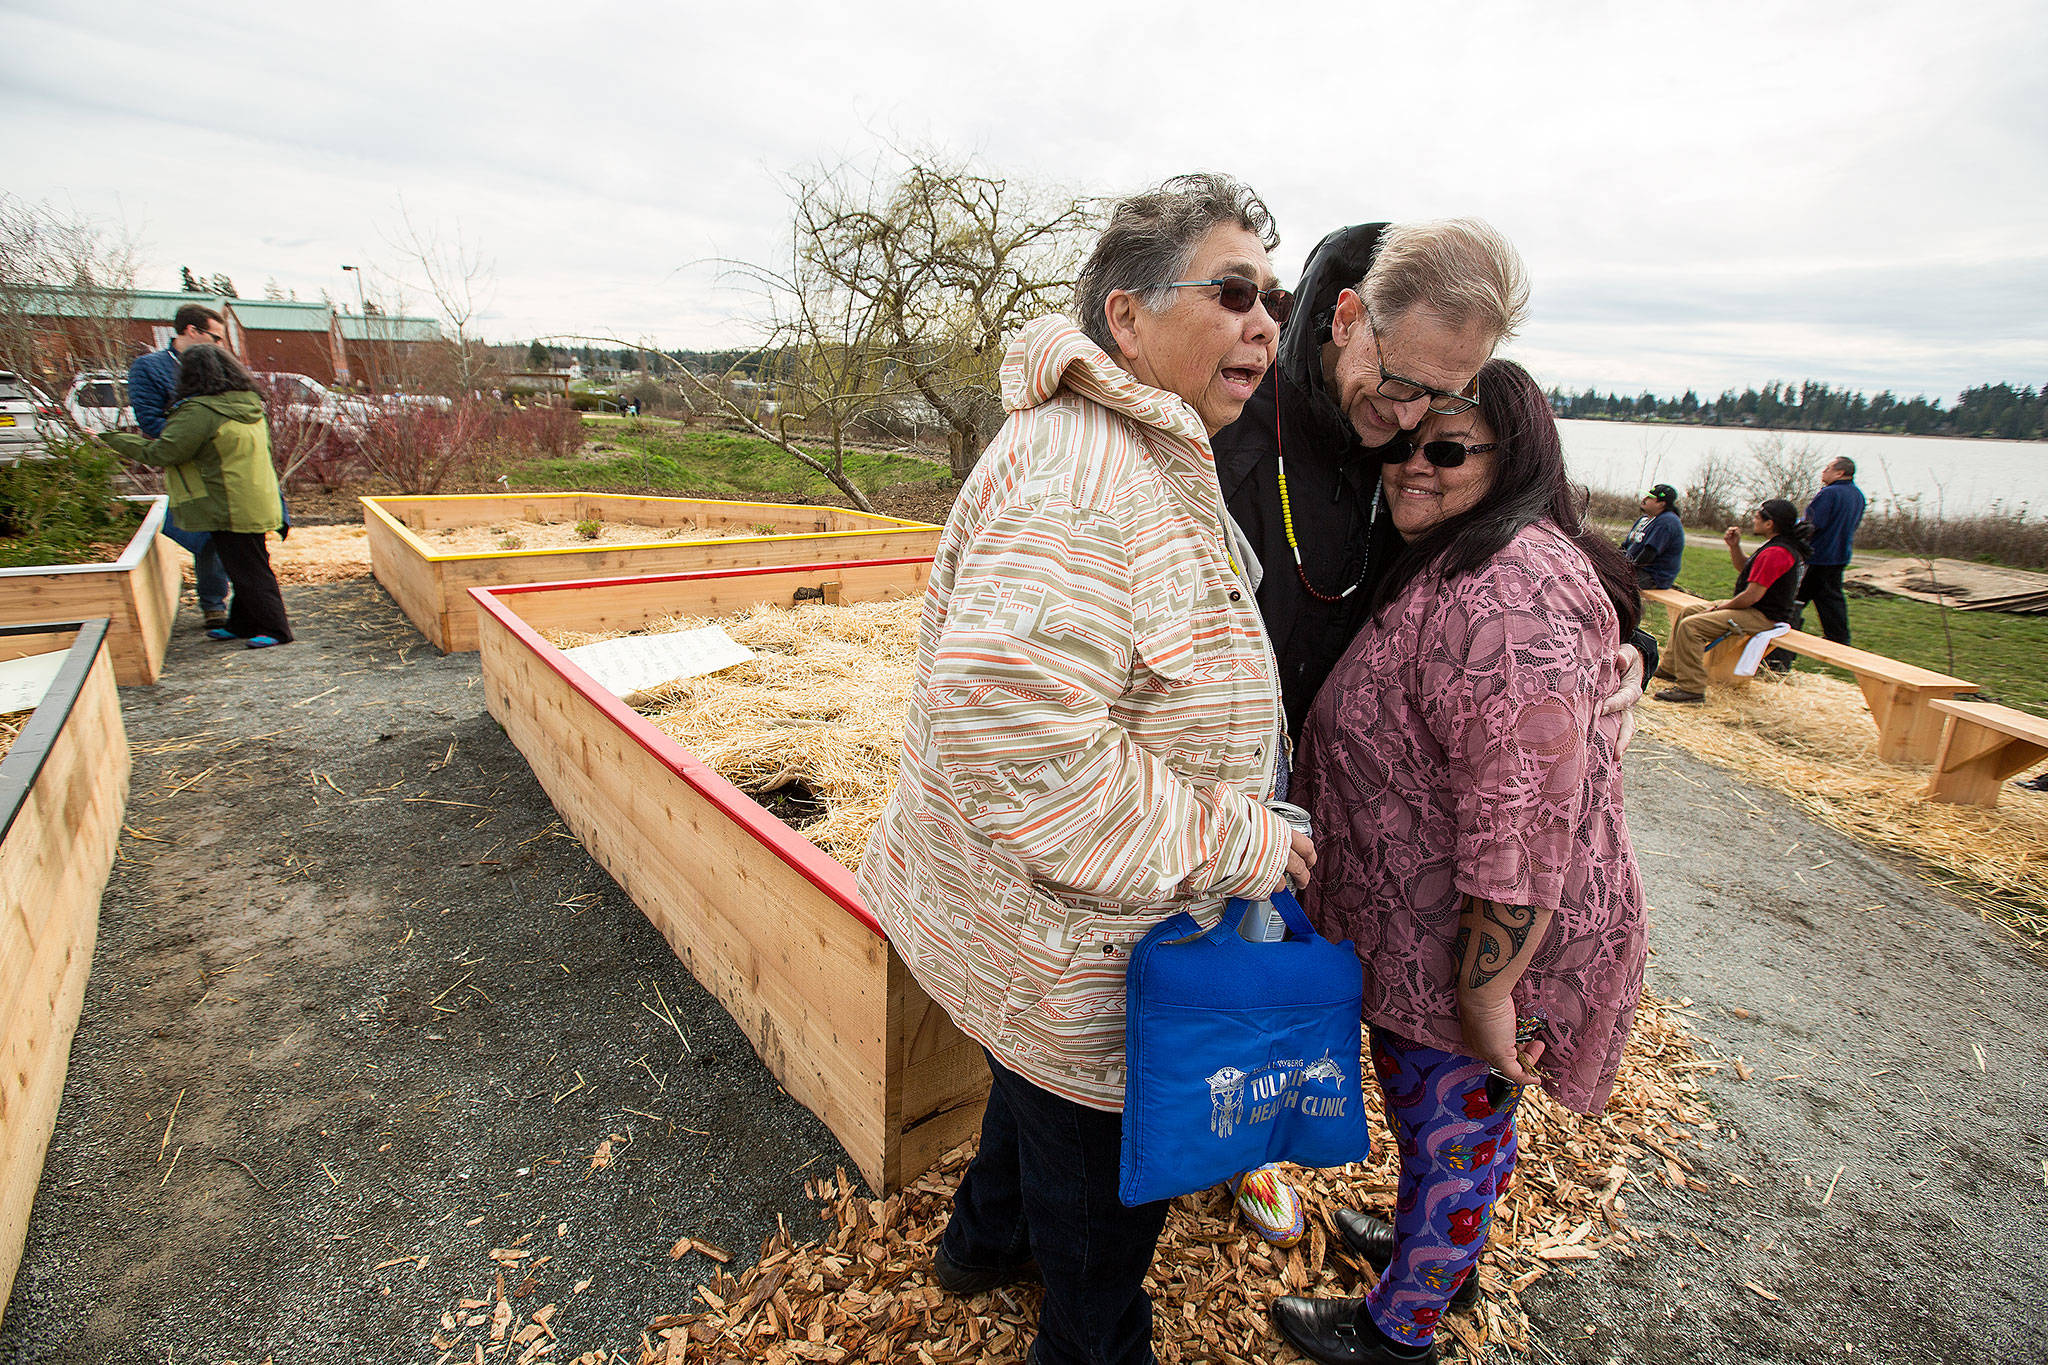 Father Pat Twohy is hugged by Tulalip Tribes Annette Napeahi (left) and Sheryl Fryberg after the dedication of a medicine wheel garden at the Tulalip Health Clinic on Monday, March 20. (Andy Bronson / The Herald)